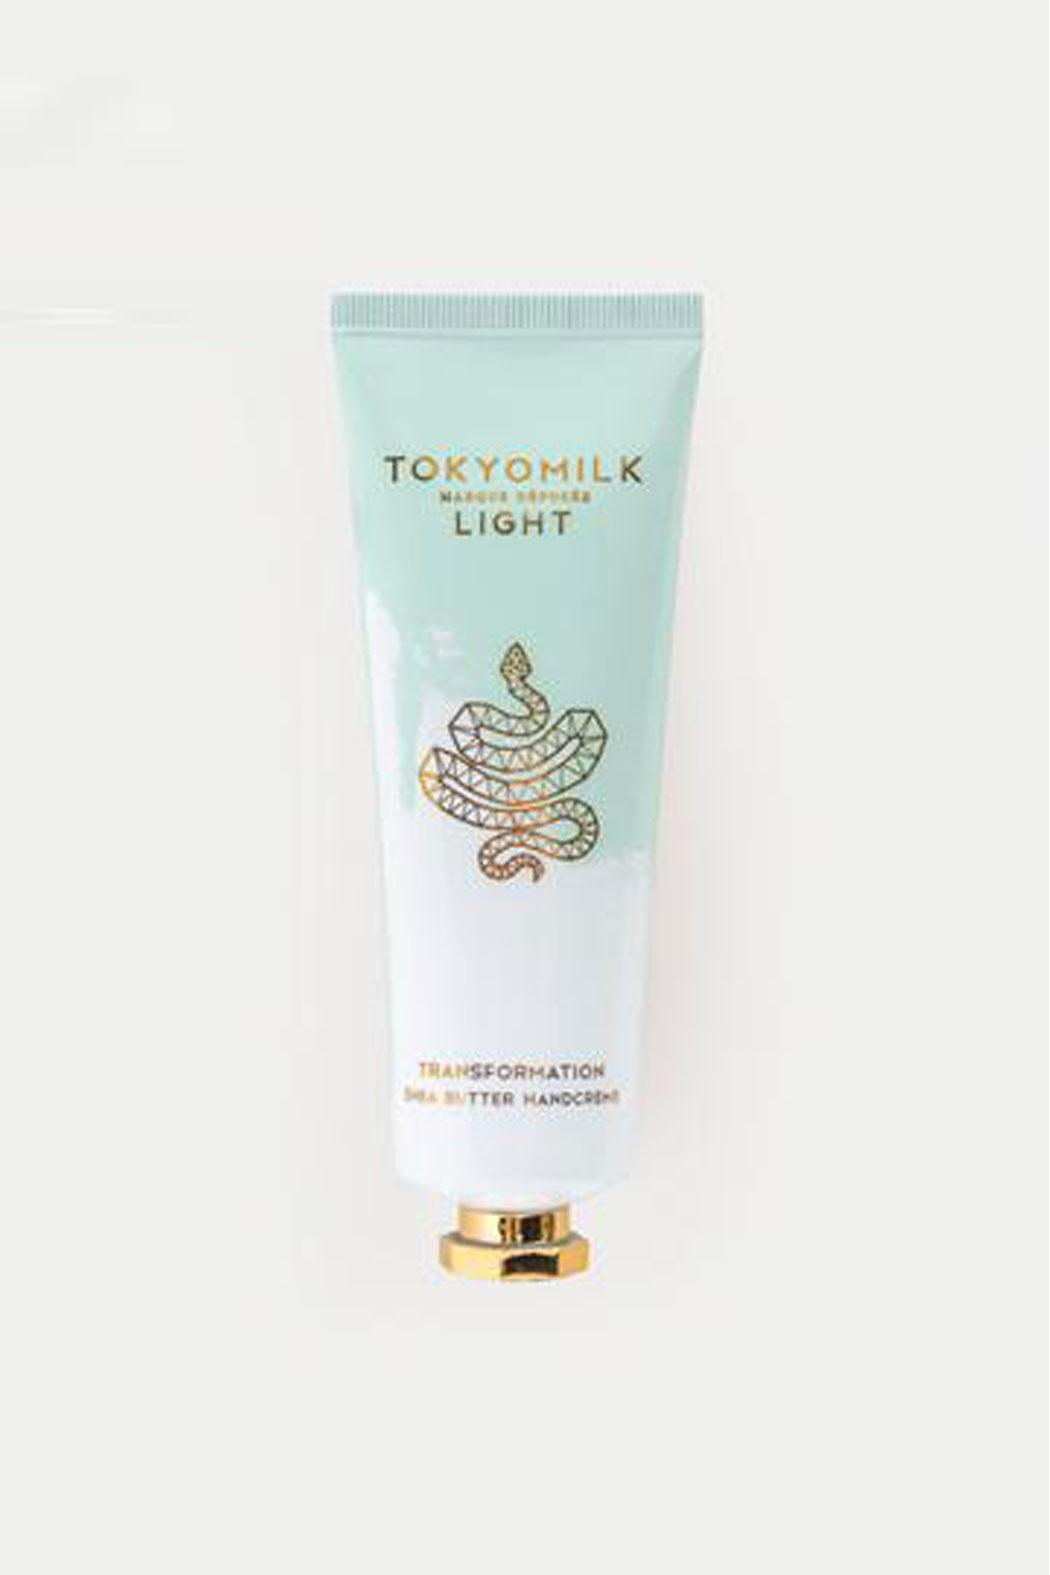 TokyoMilk Transformation Handcream - Main Image